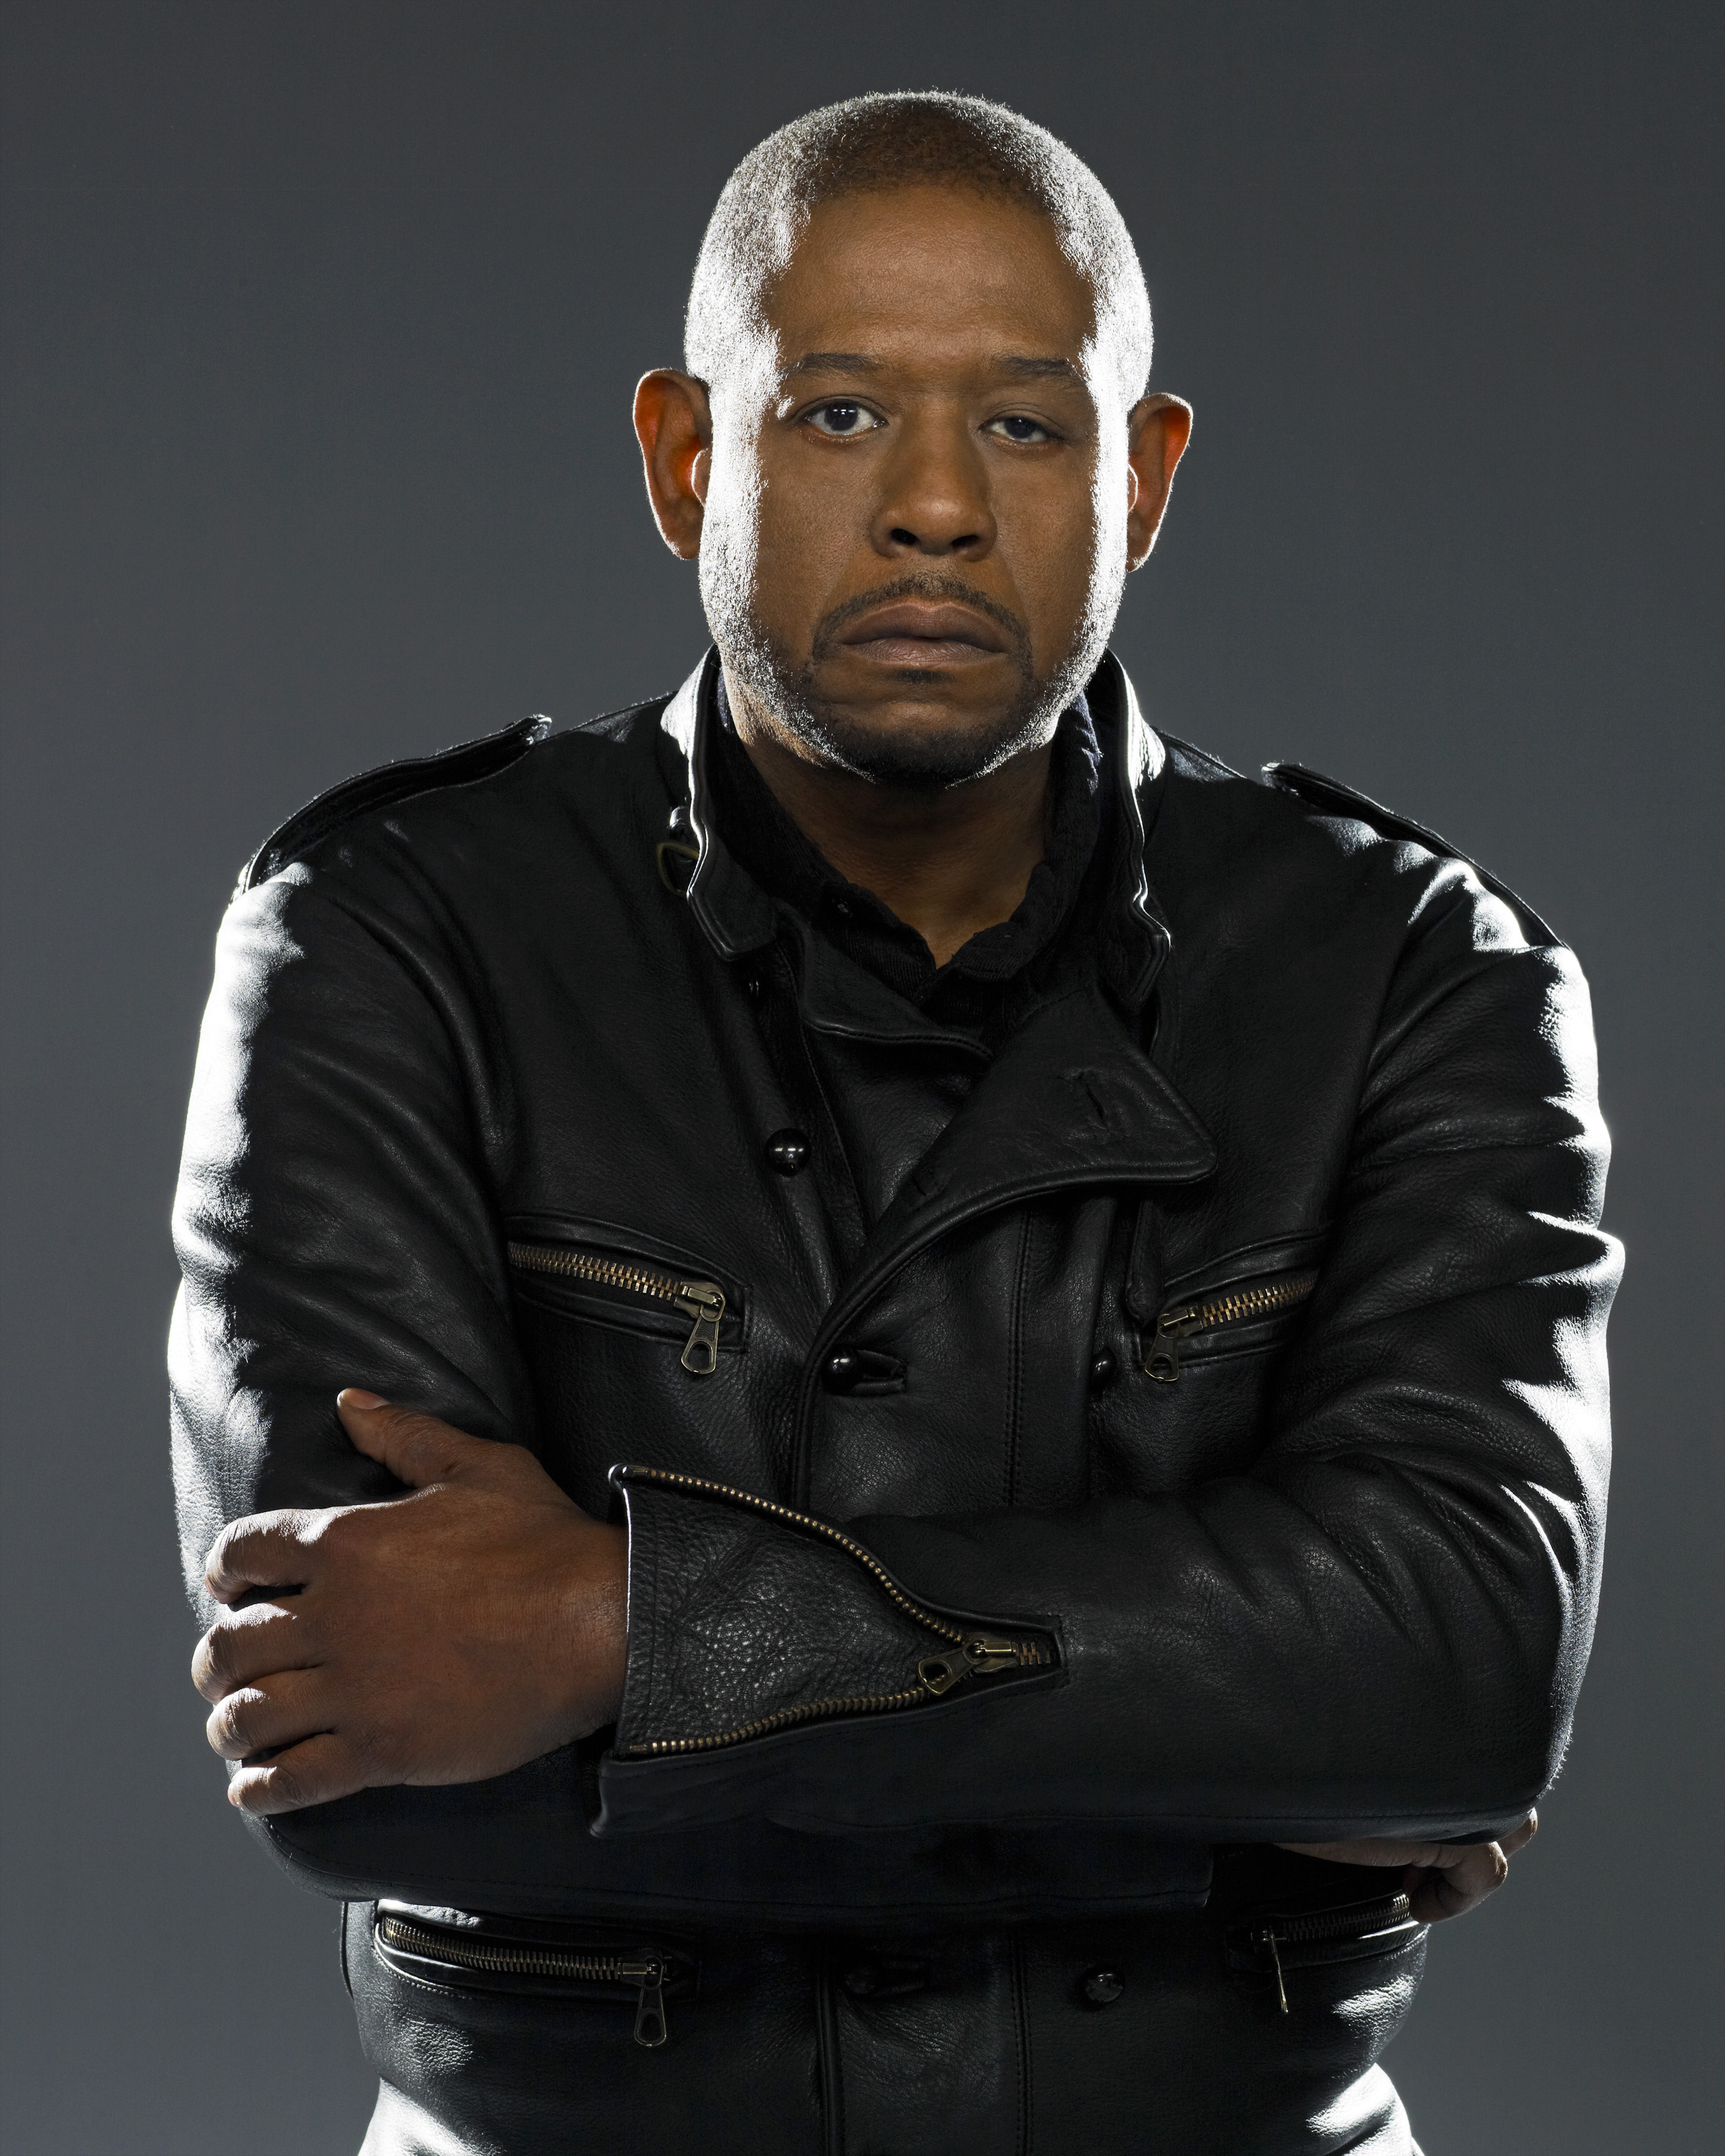 Pictures of Forest Whitaker - Pictures Of Celebrities